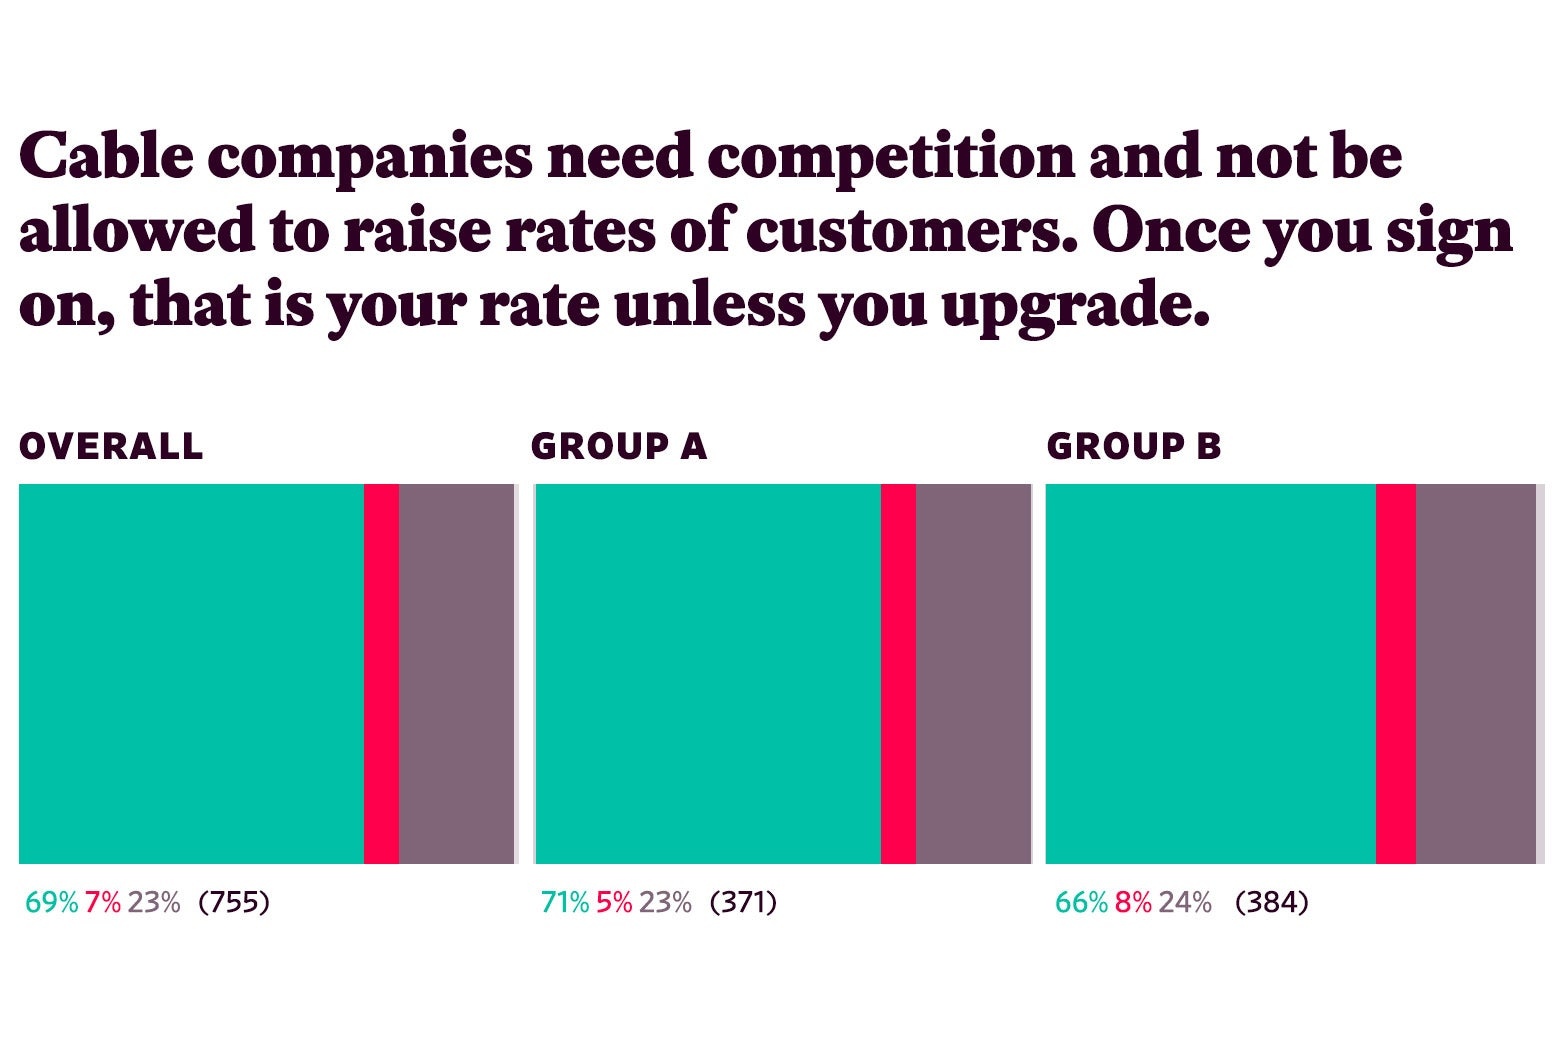 """Responses to """"Cable companies need competition and not be allowed to raise rates of customers. Once you sign on, that is your rate unless you upgrade."""""""